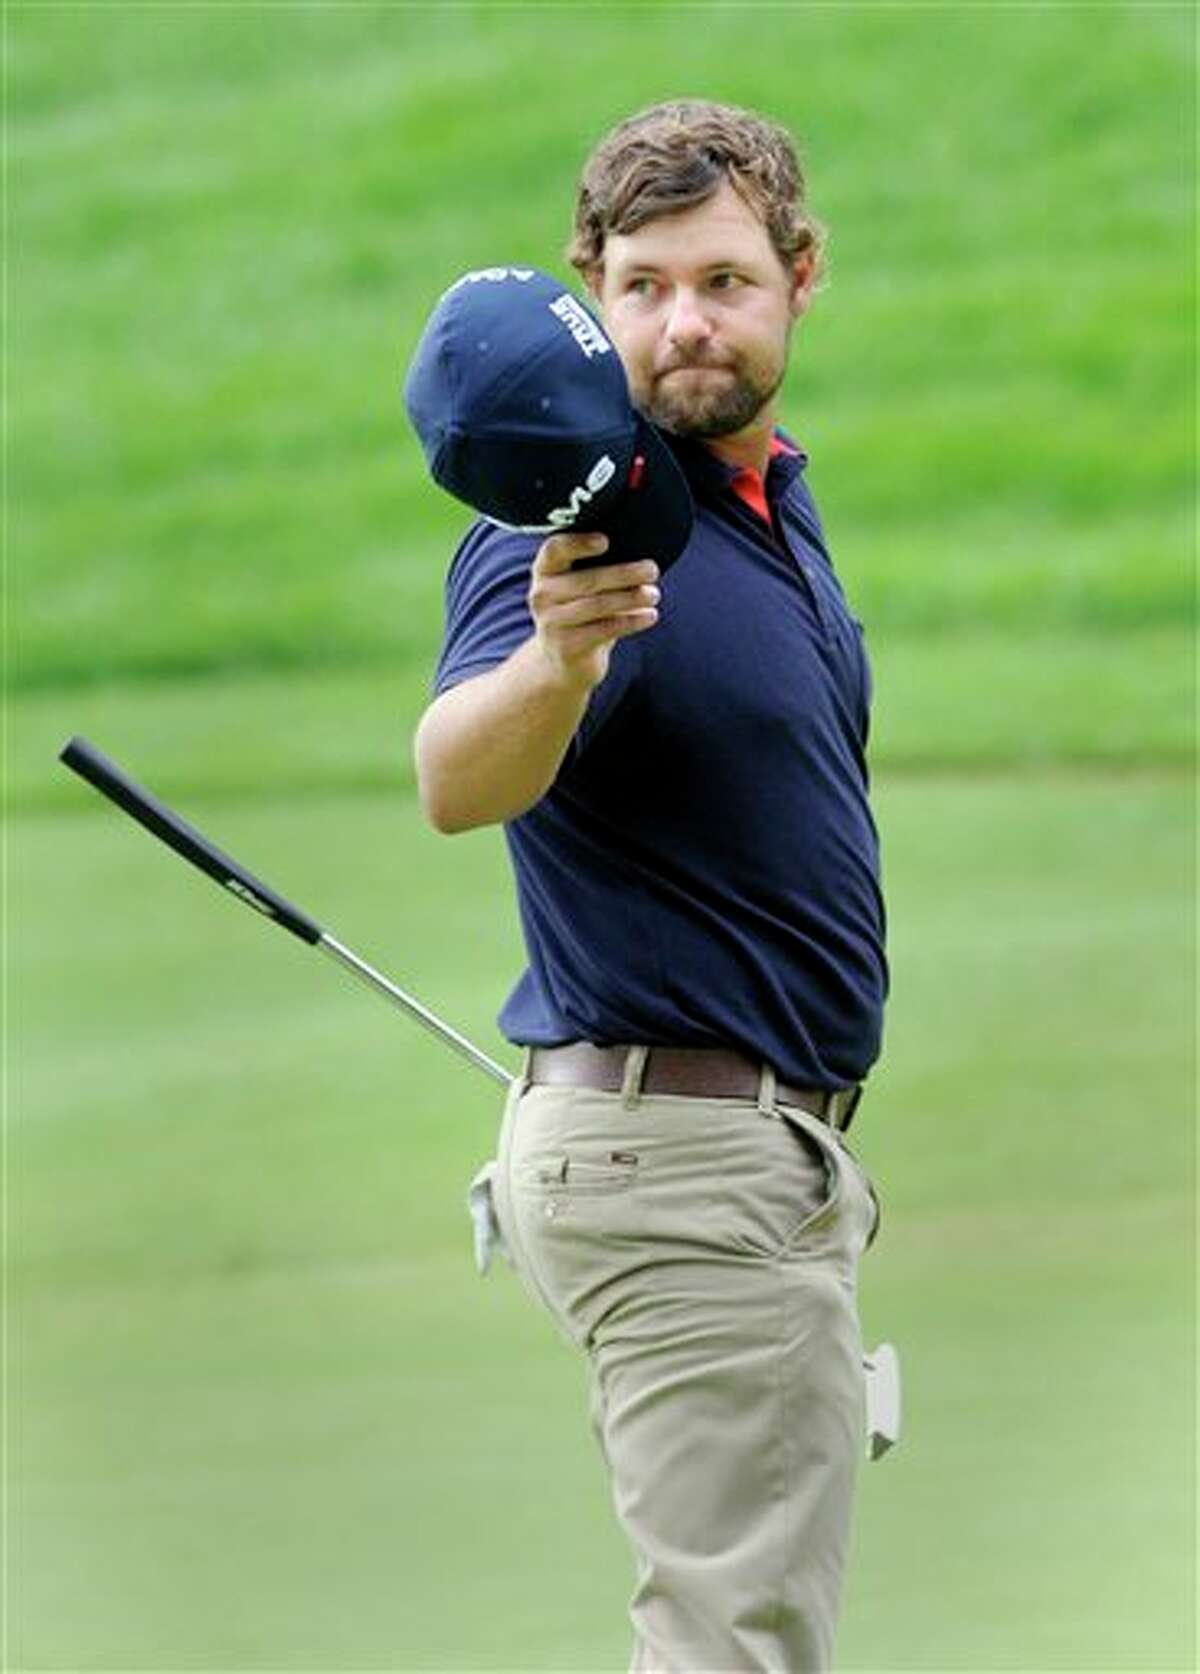 Ryan Moore reacts after his bogey on the 18th hole during the final round of the Travelers Championship golf tournament in Cromwell, Conn., on Sunday, June 26, 2011. Moore's bogey on the hole knocked him out of a tie for first, he finished the tournament 19-under par in a two way tie for second. (AP Photo/Fred Beckham)